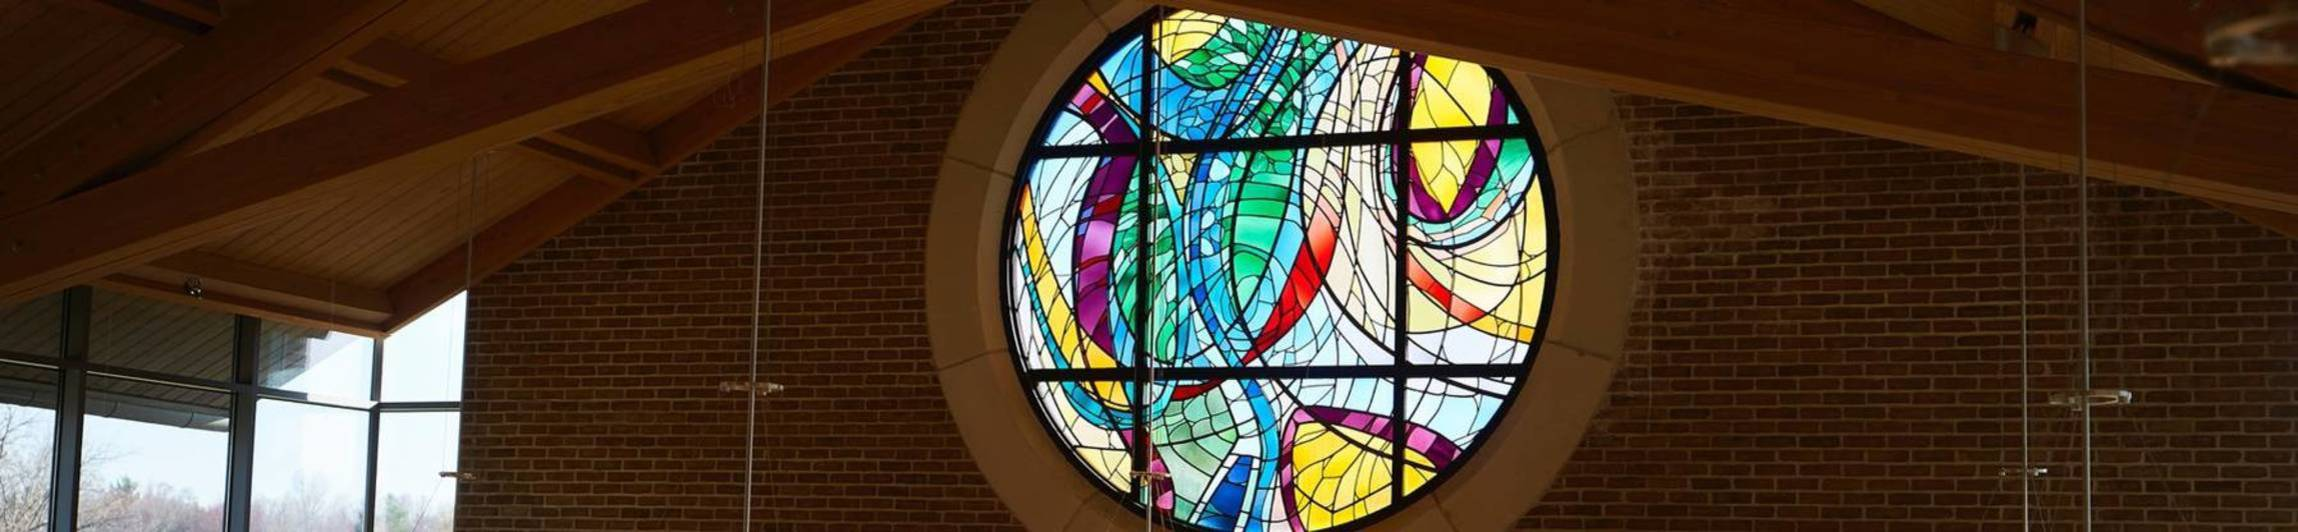 Ursuline college stained glass window3